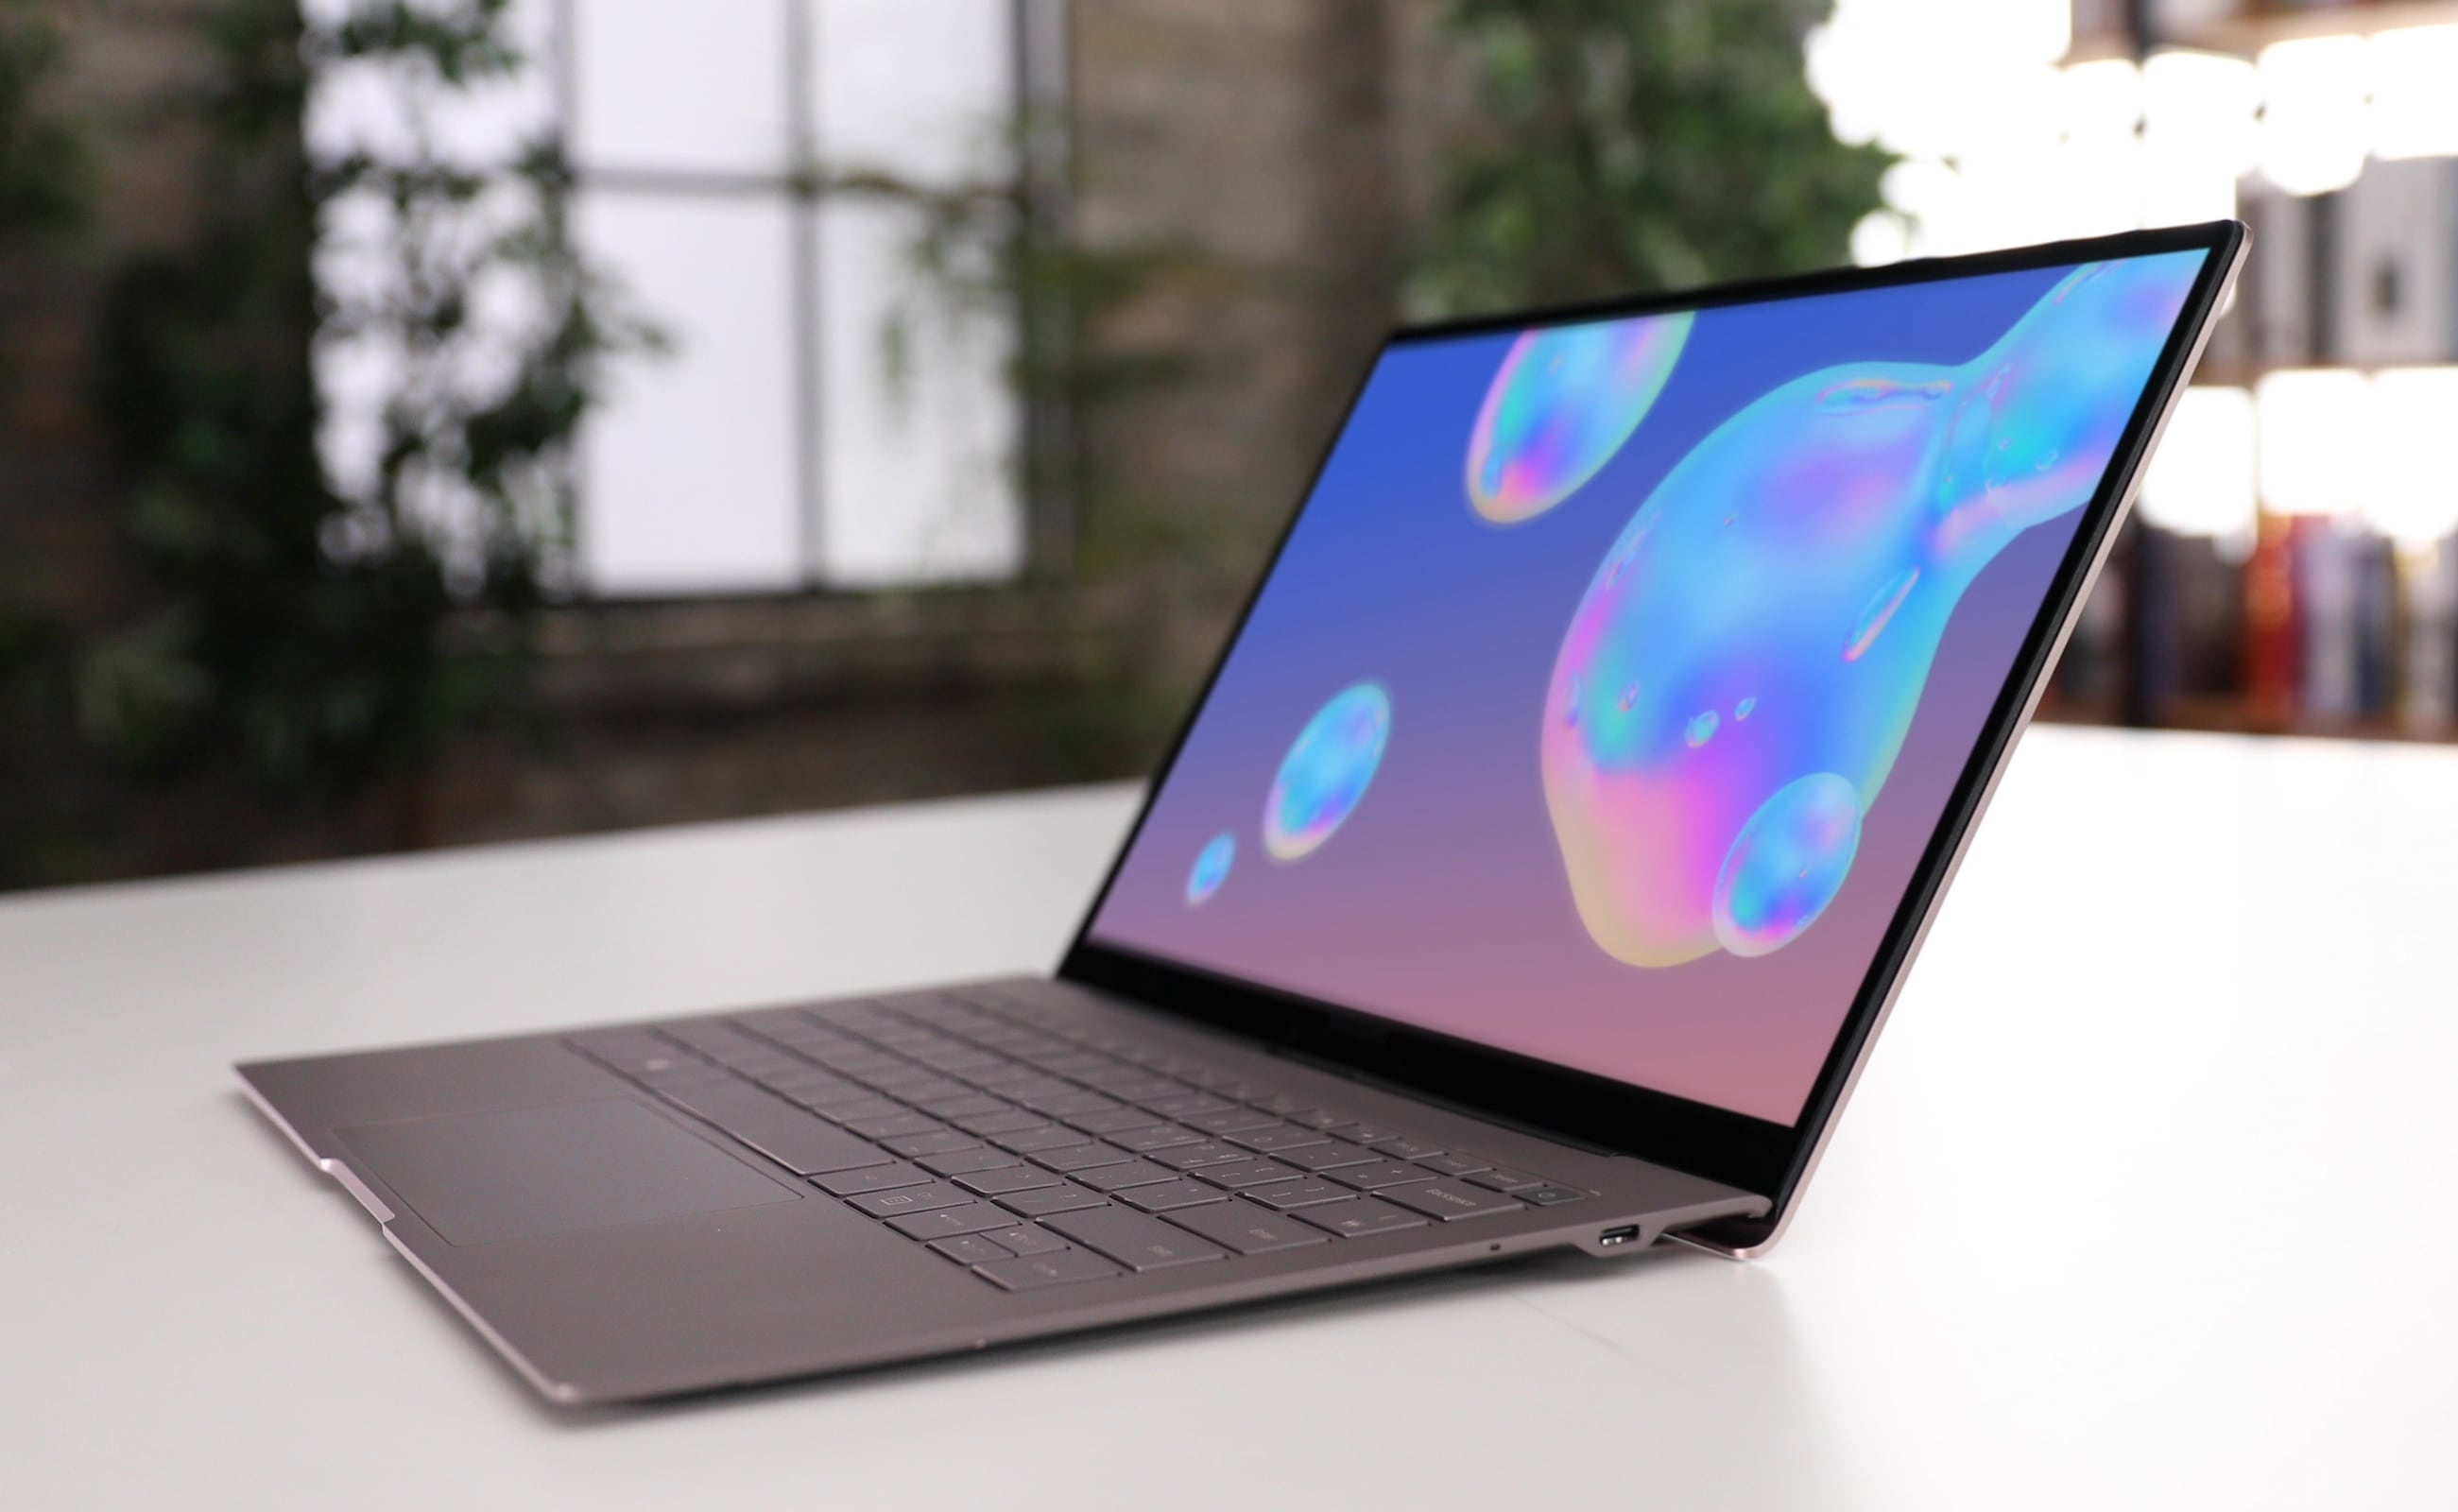 Samsung Galaxy Book S Ultra-Light Laptop has an LTE chipset so you can work anywhere